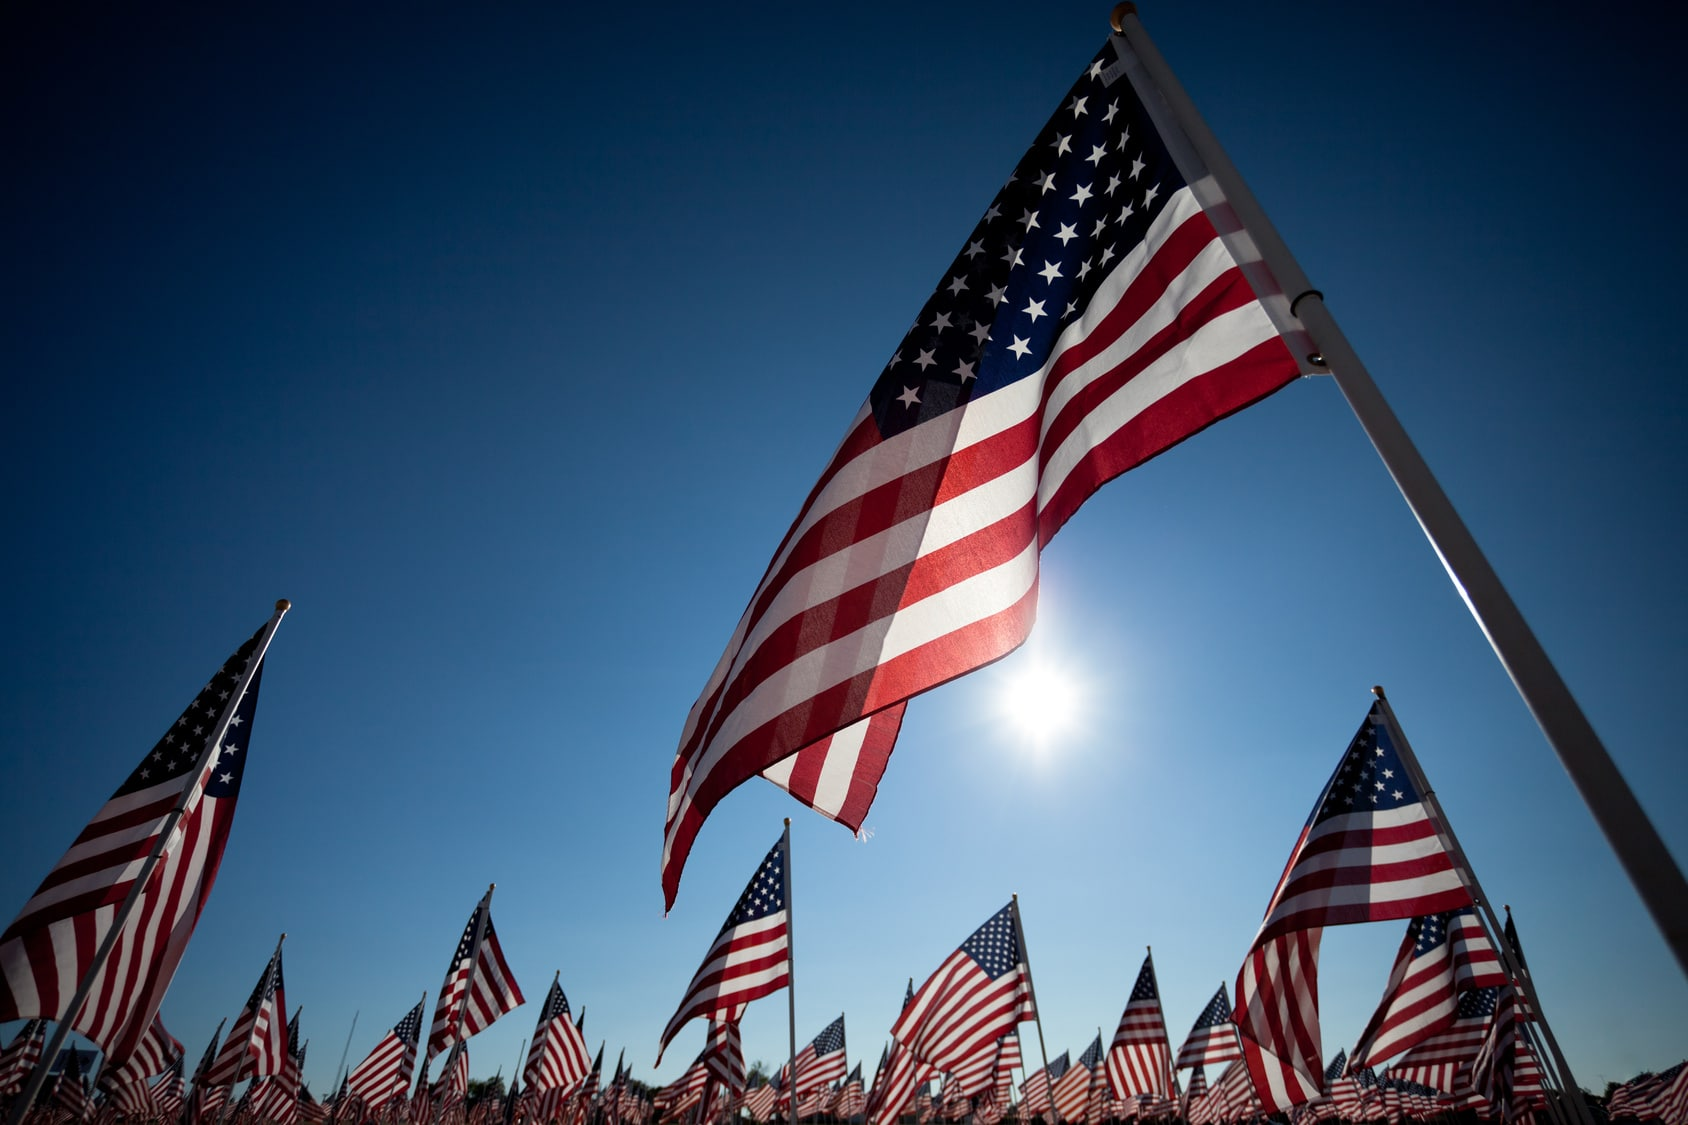 American flags with sun in background